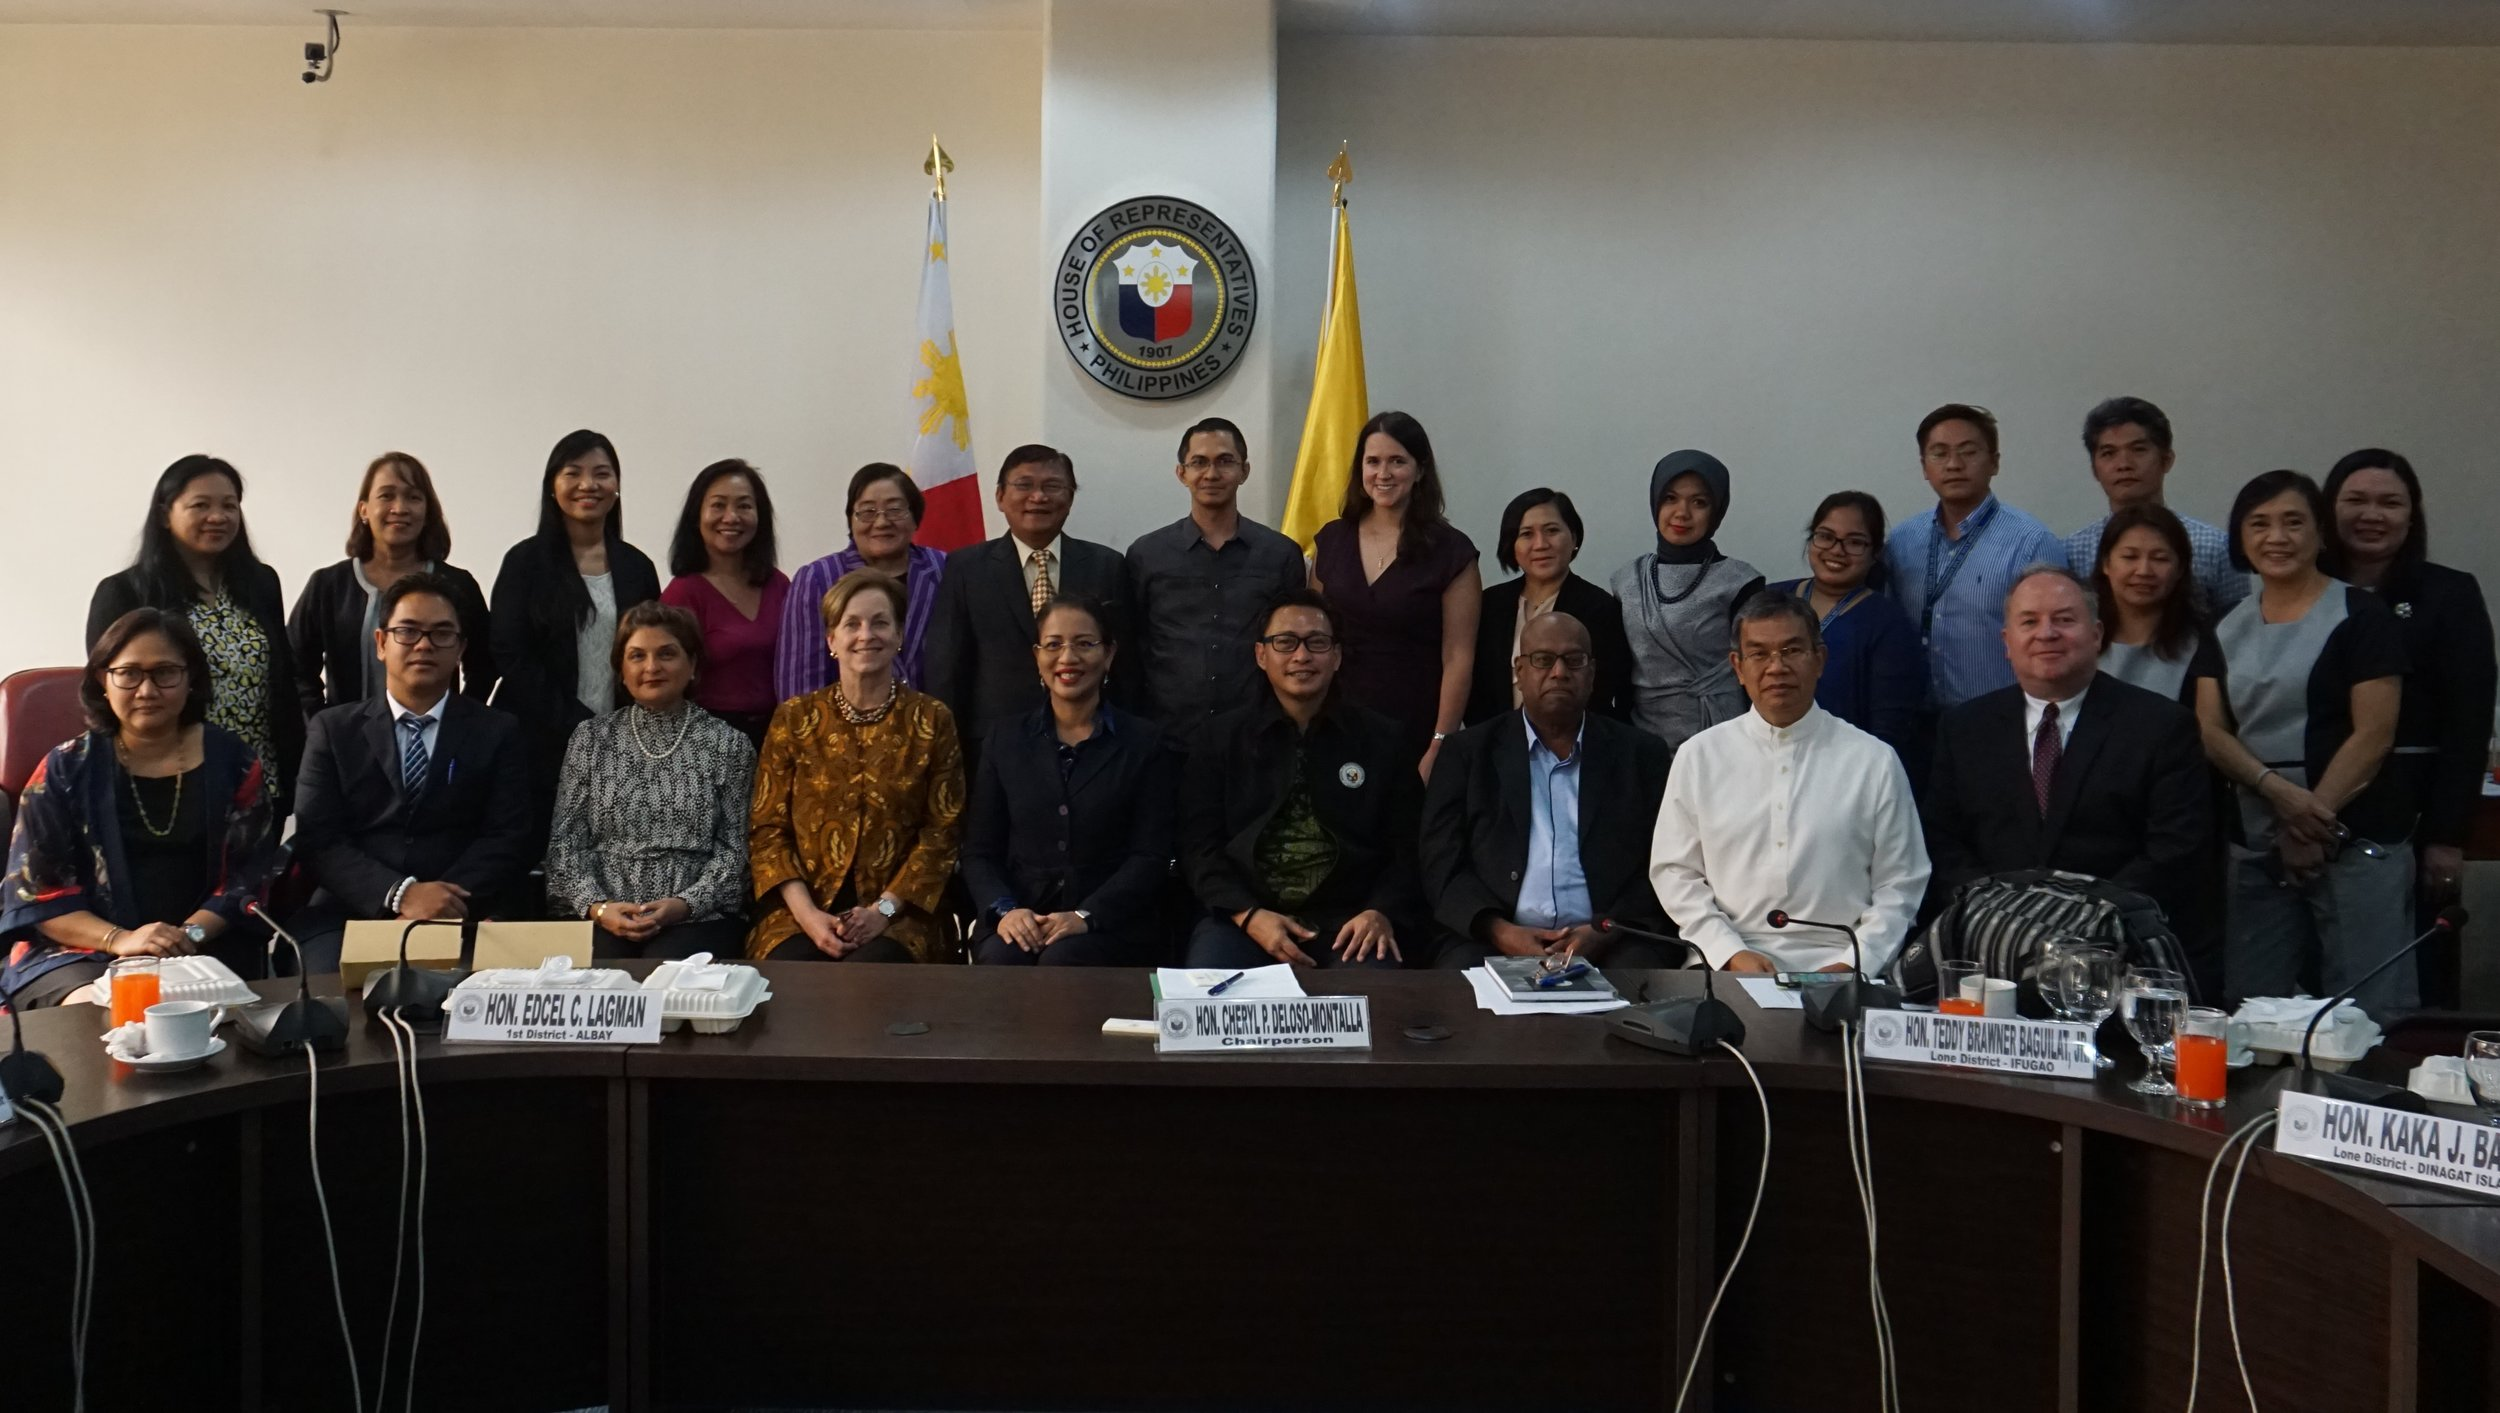 ASEAN Parliamentarians for Human Rights (APHR), the Philippine House of Representatives Human Rights Committee, and NDI hosted a congressional forum in Manila on the role of legislators as thought leaders and drivers of change in the region.